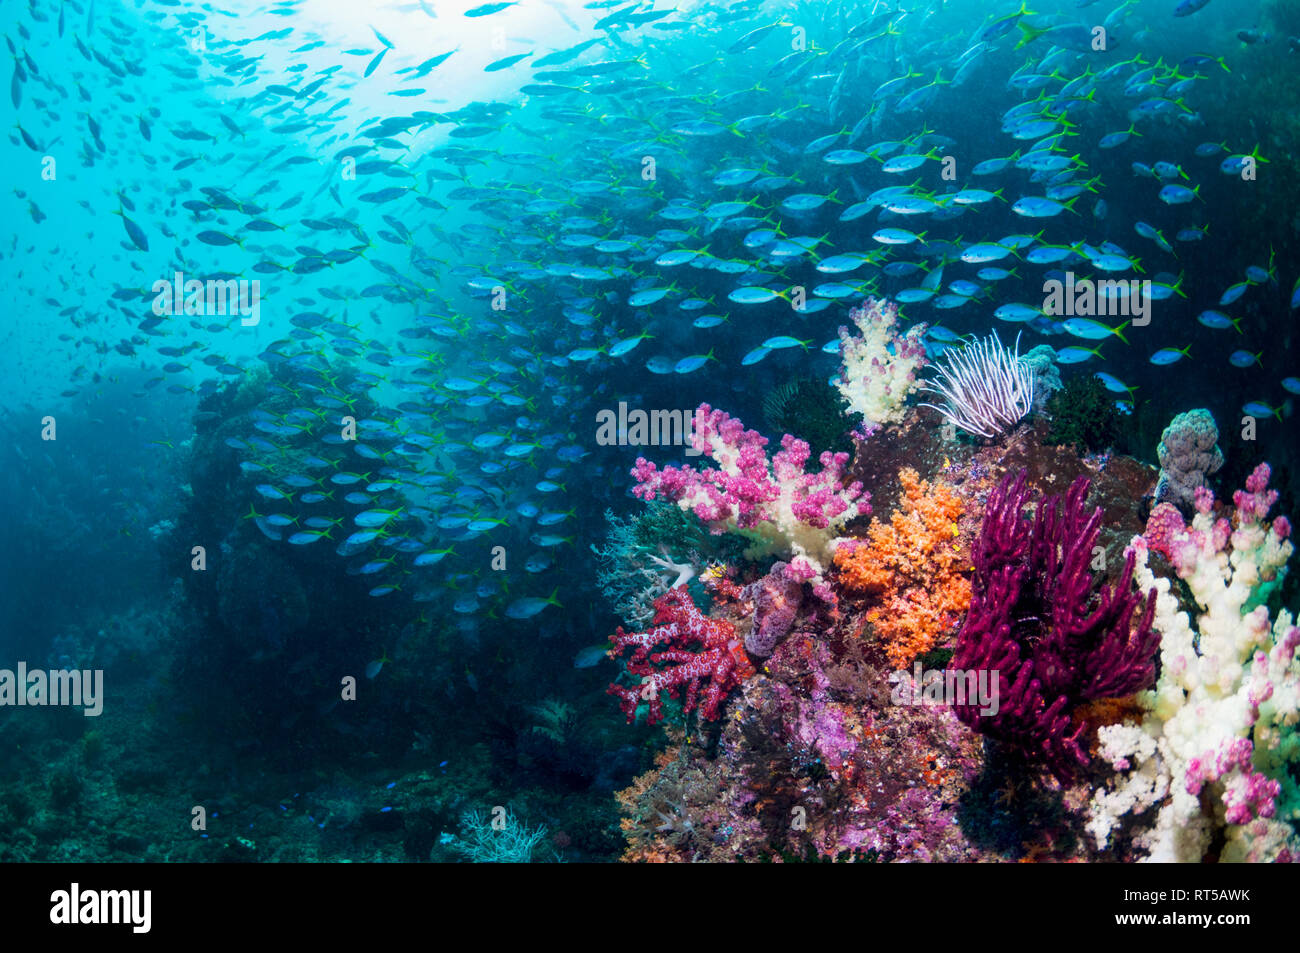 Coral reef scenery with soft corals [Dendronephthya sp.] and a school of Yellowback fusiliers [Ceasio teres].  West Papua, Indonesia. Stock Photo